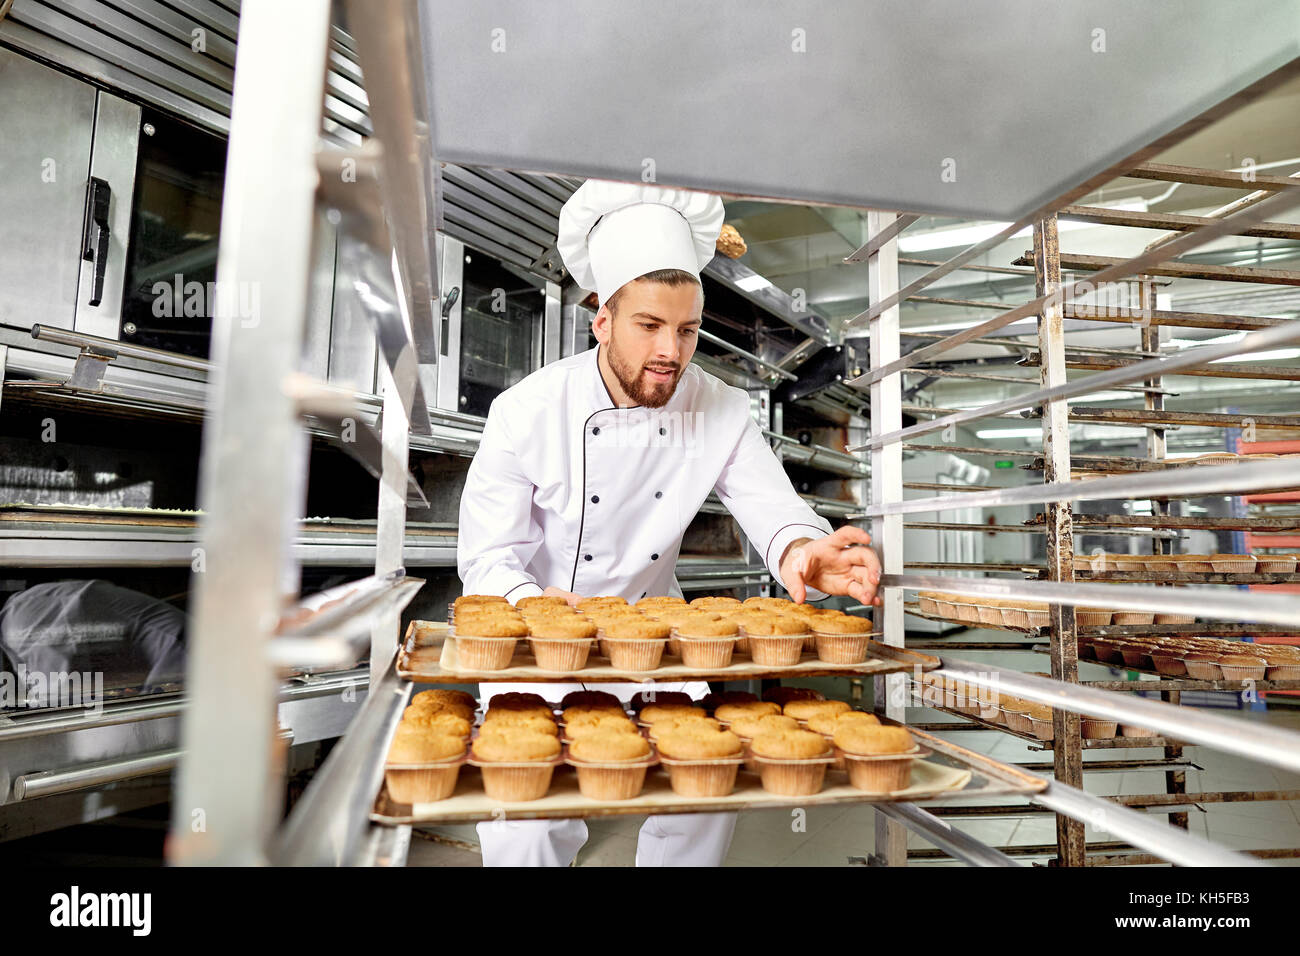 Baker man with a tray of cupcakes in his hands at work in Christ - Stock Image